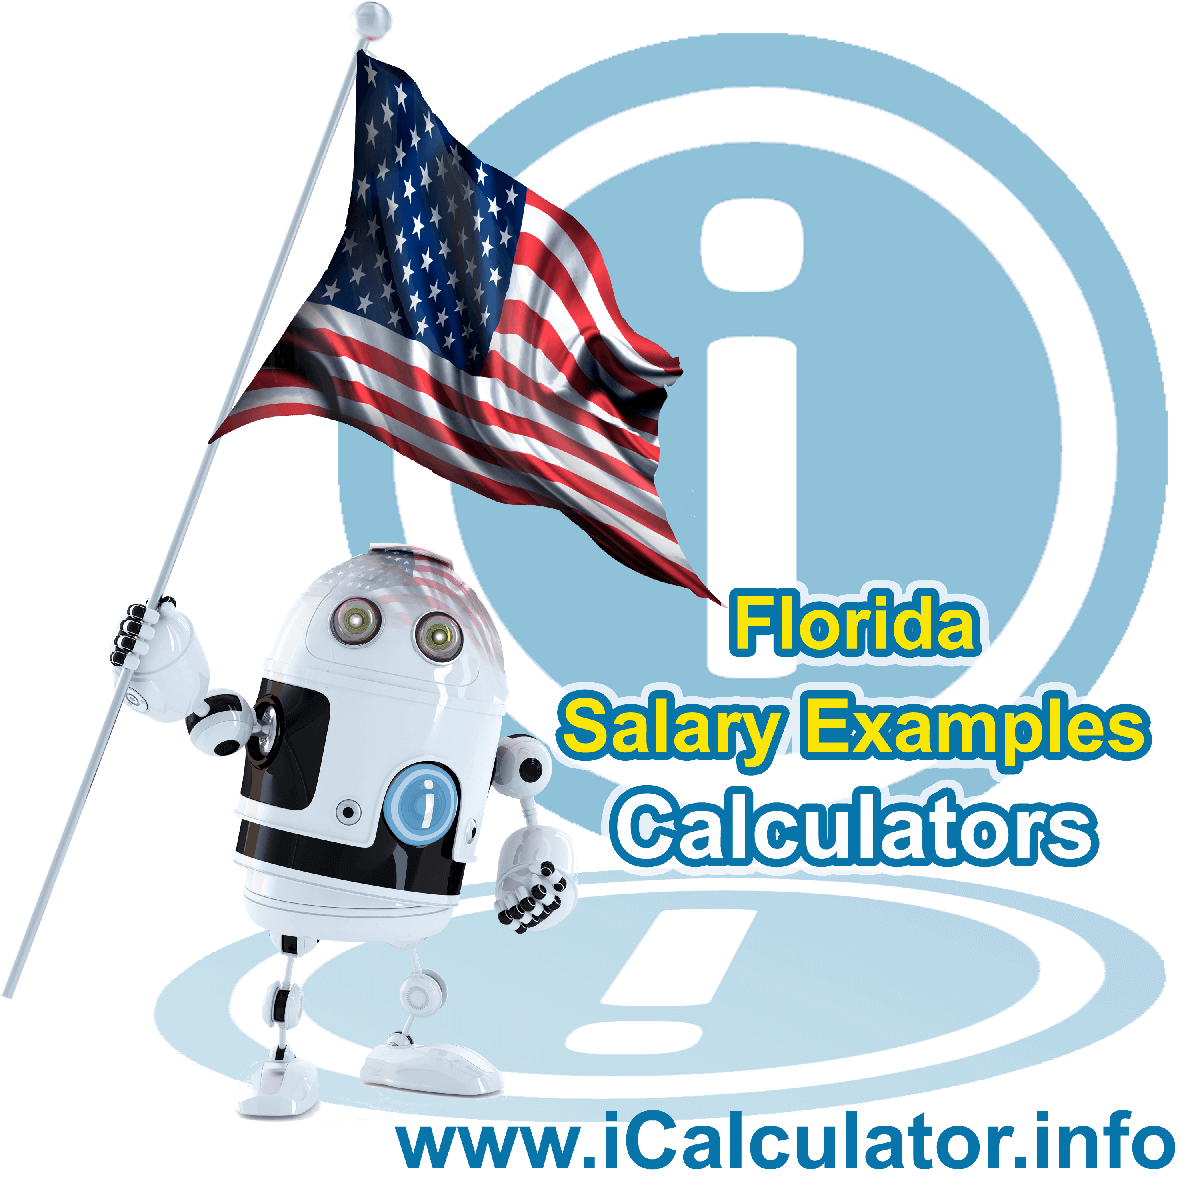 Florida Salary Example for $100.00 in 2020 | iCalculator | $100.00 salary example for employee and employer paying Florida State tincome taxes. Detailed salary after tax calculation including Florida State Tax, Federal State Tax, Medicare Deductions, Social Security, Capital Gains and other income tax and salary deductions complete with supporting Florida state tax tables